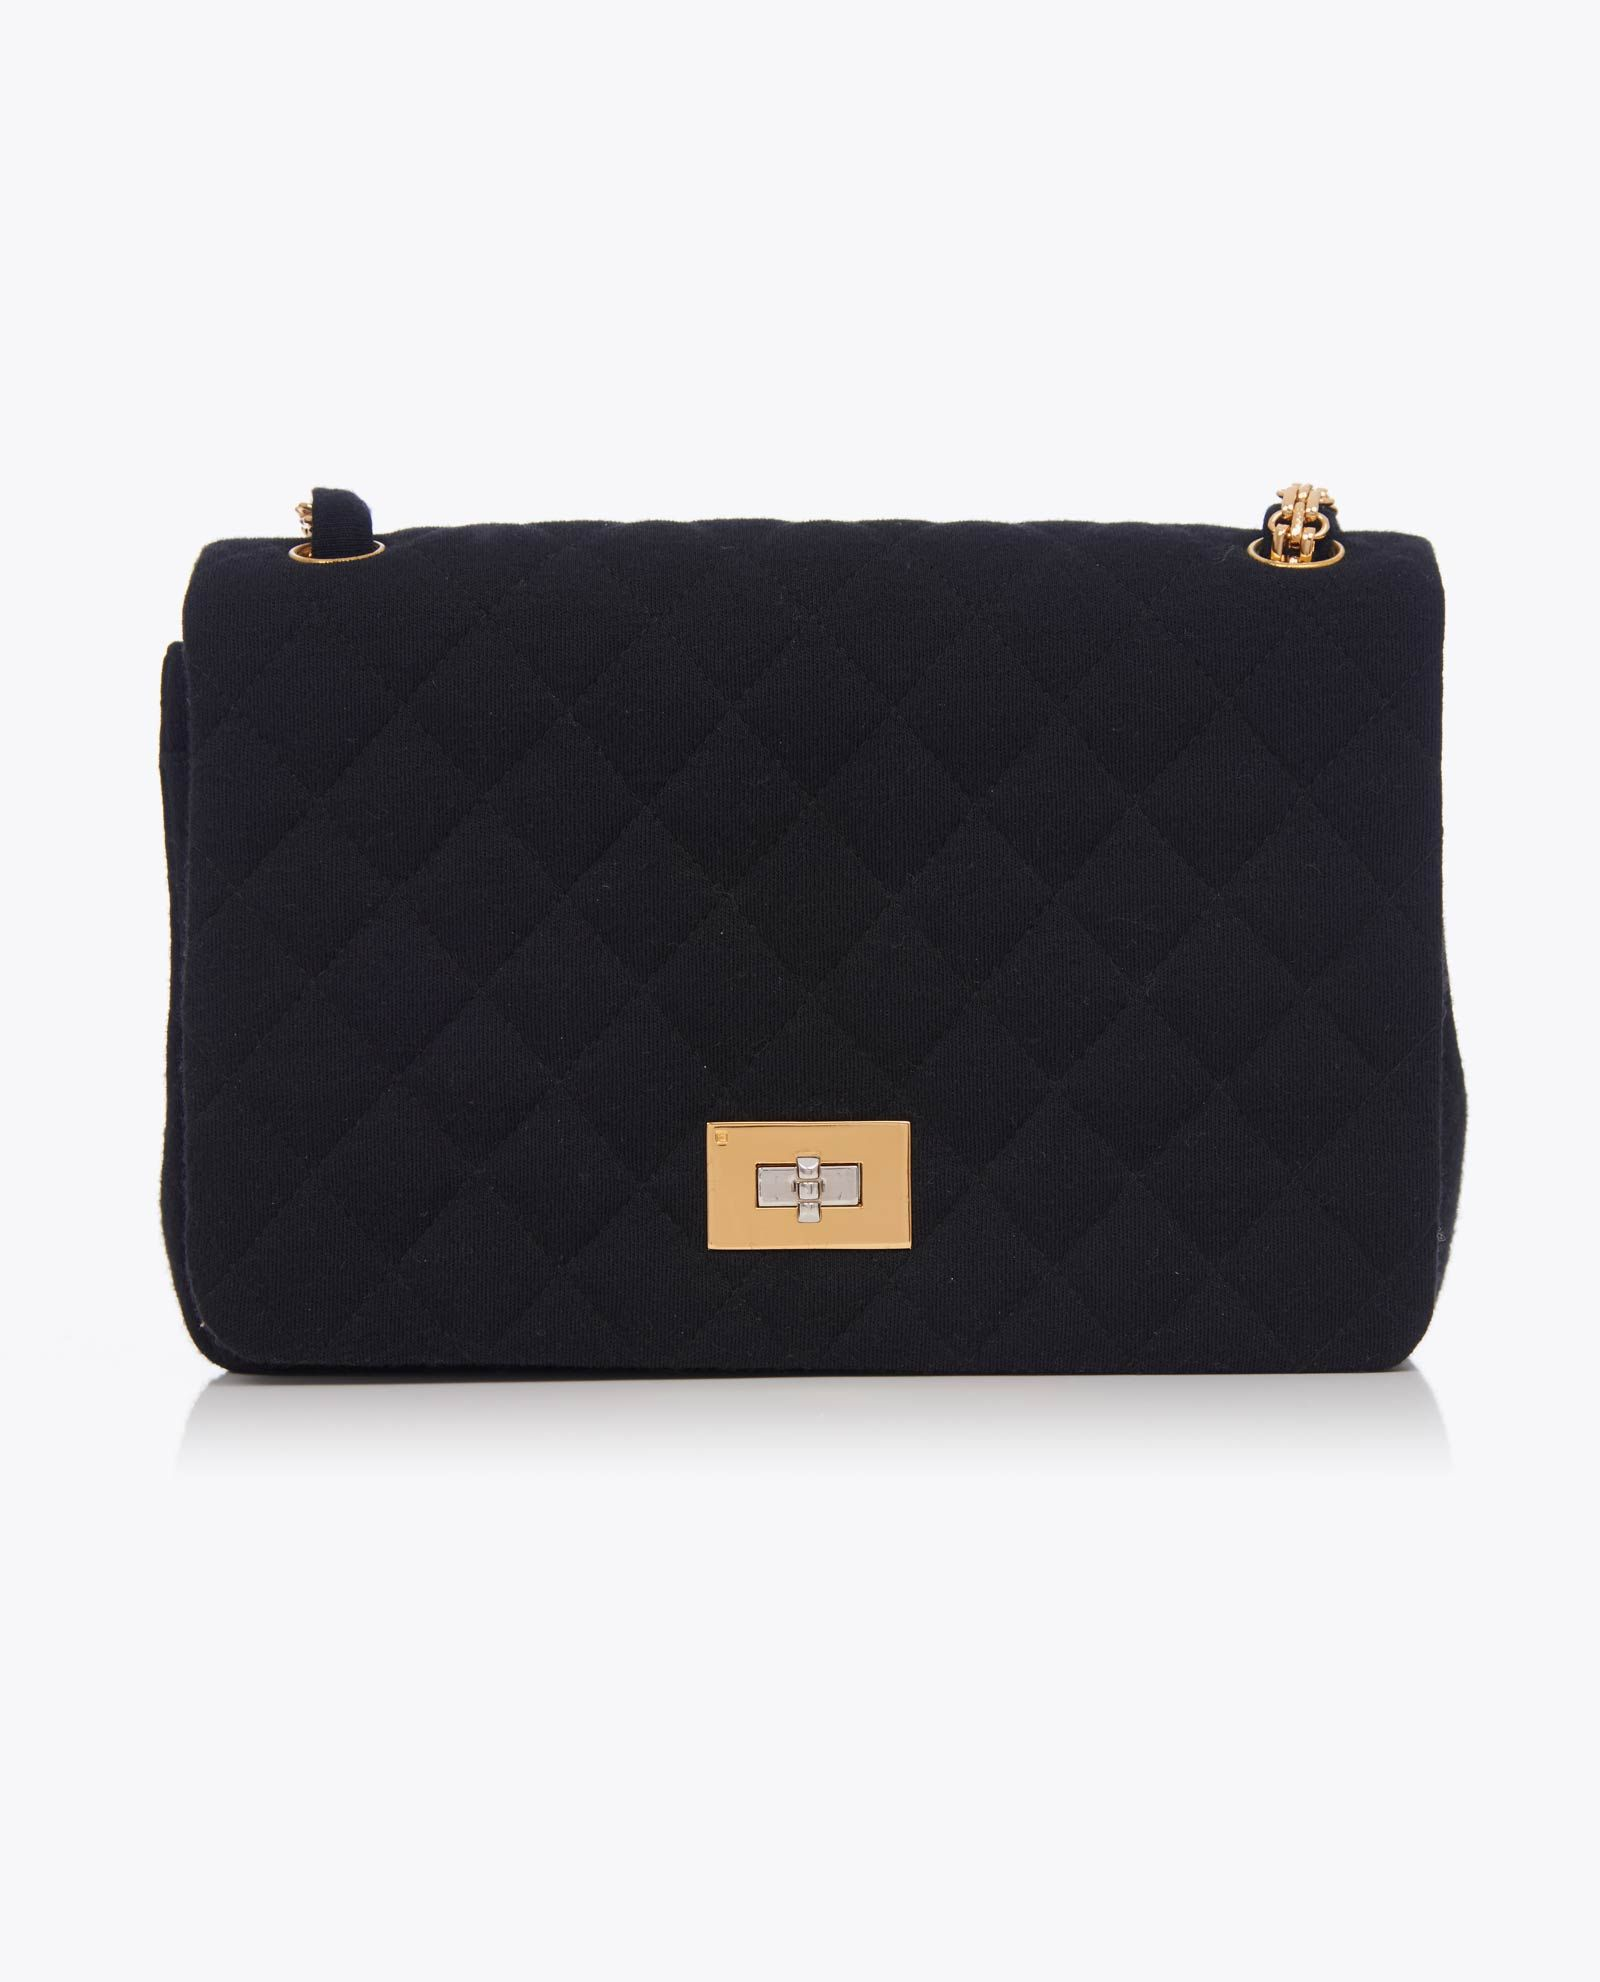 66cd65ea6824 Vintage Chanel Reissue 2.55 Jersey Flap Bag | Chanel Bags | Chanel ...